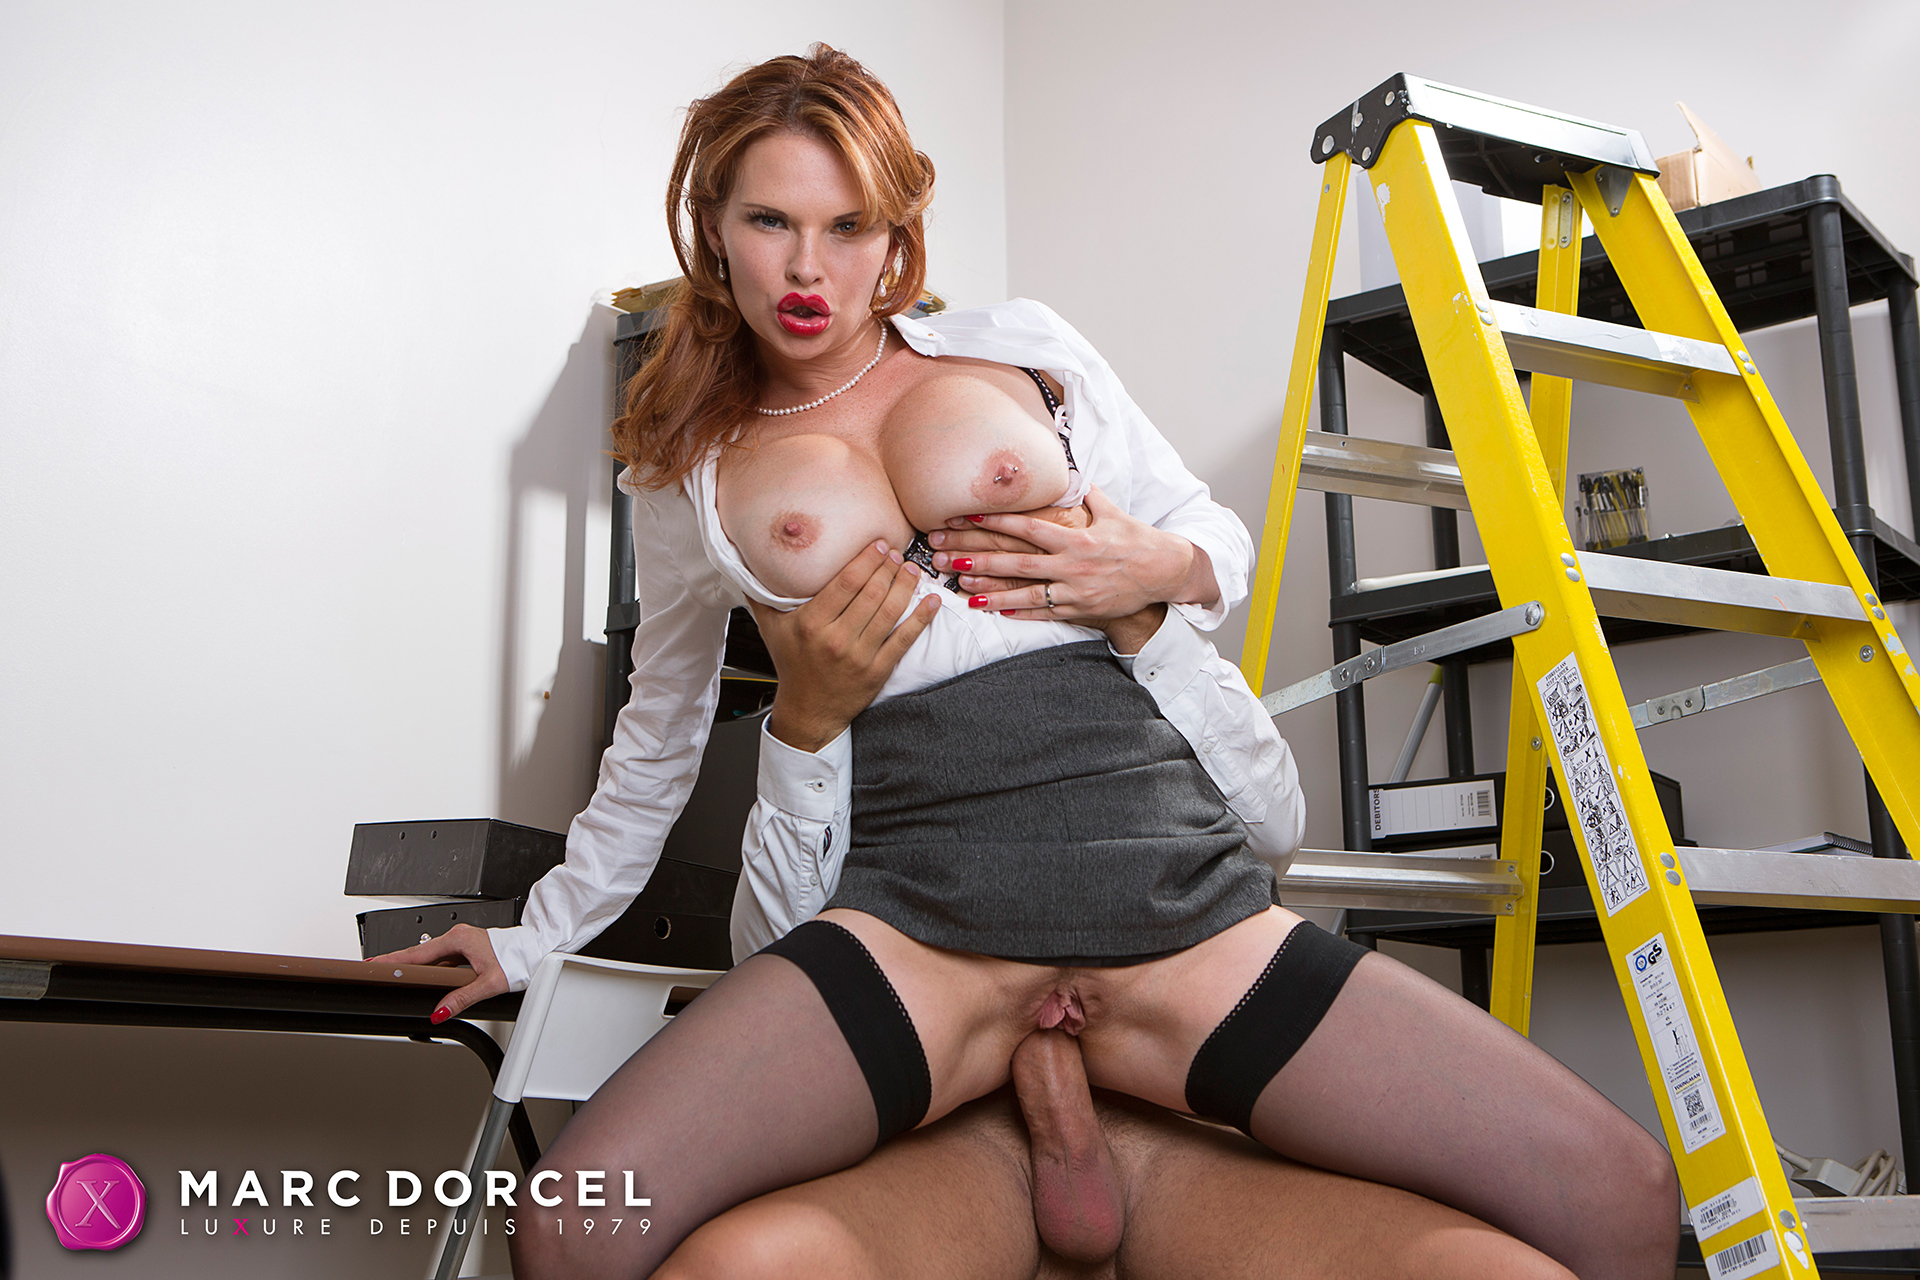 Angie dickison nude abuse